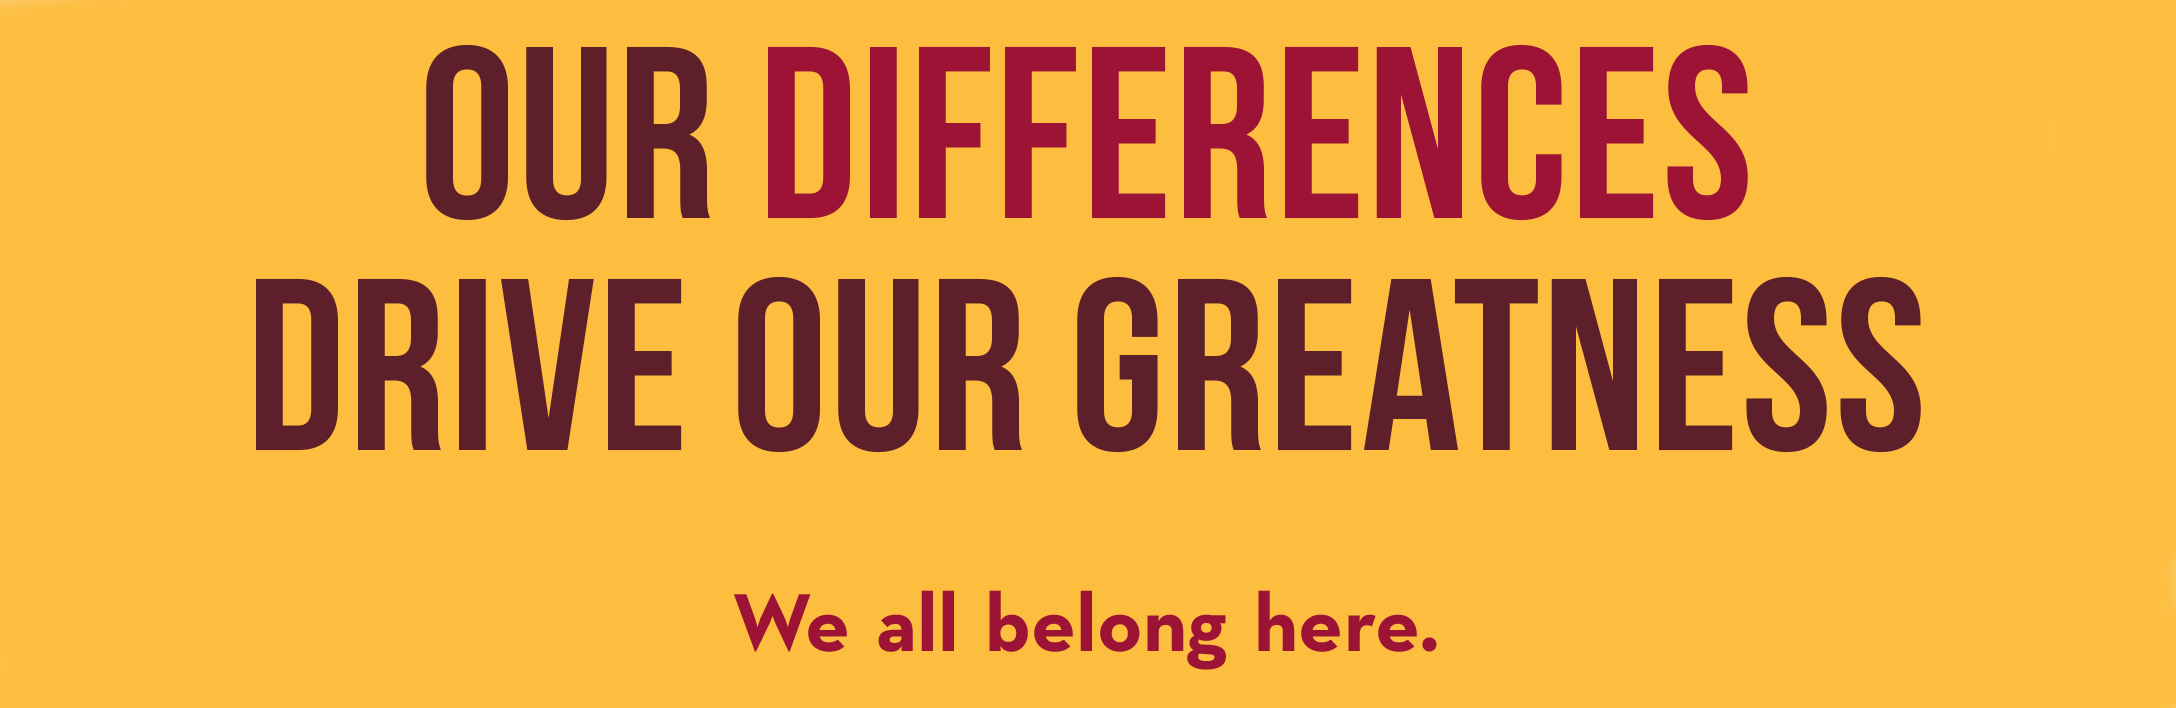 our difference drive our greatness